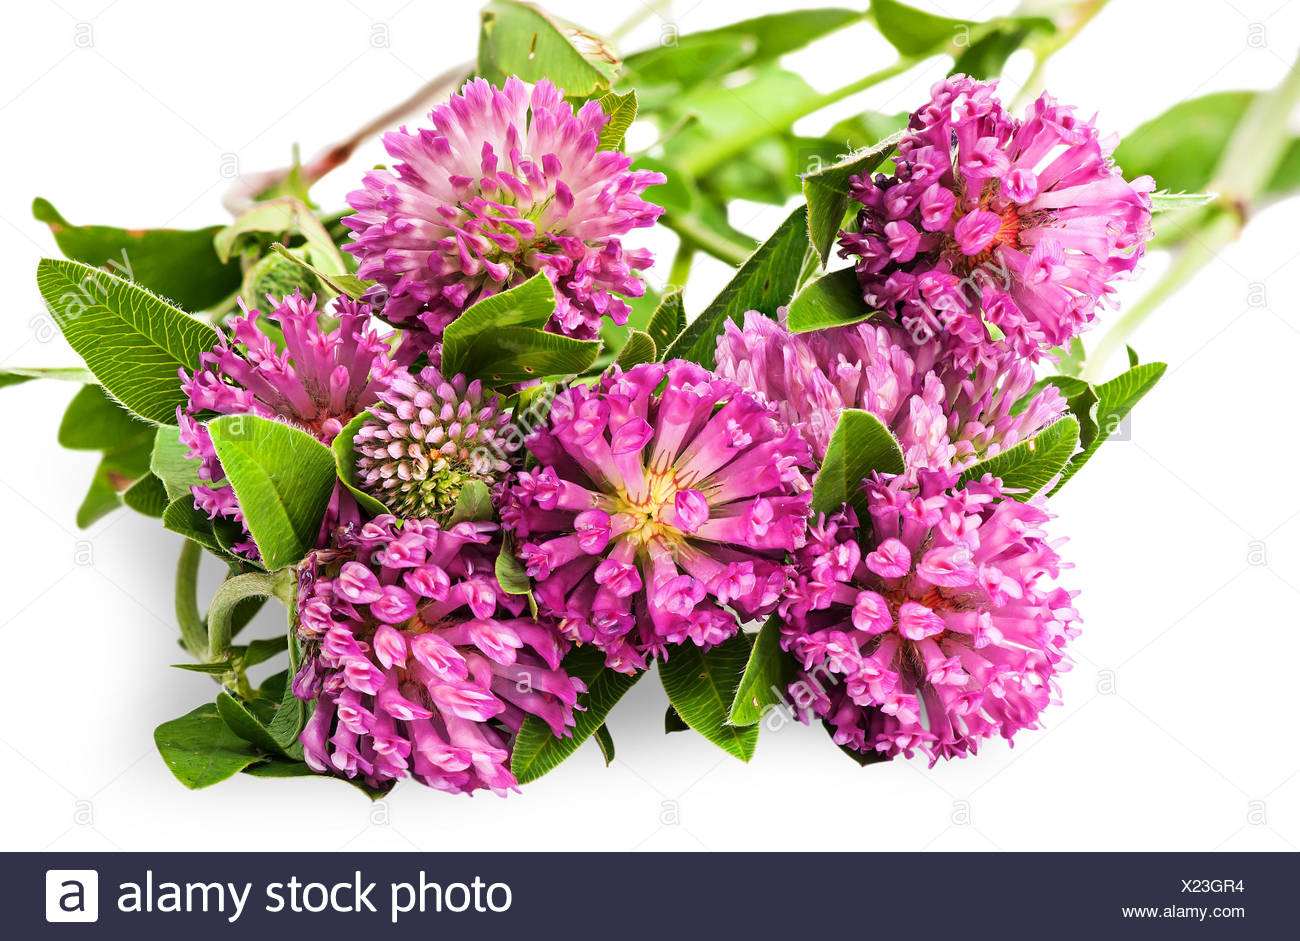 Closeup bouquet of clover flowers with green leaves Stock Photo